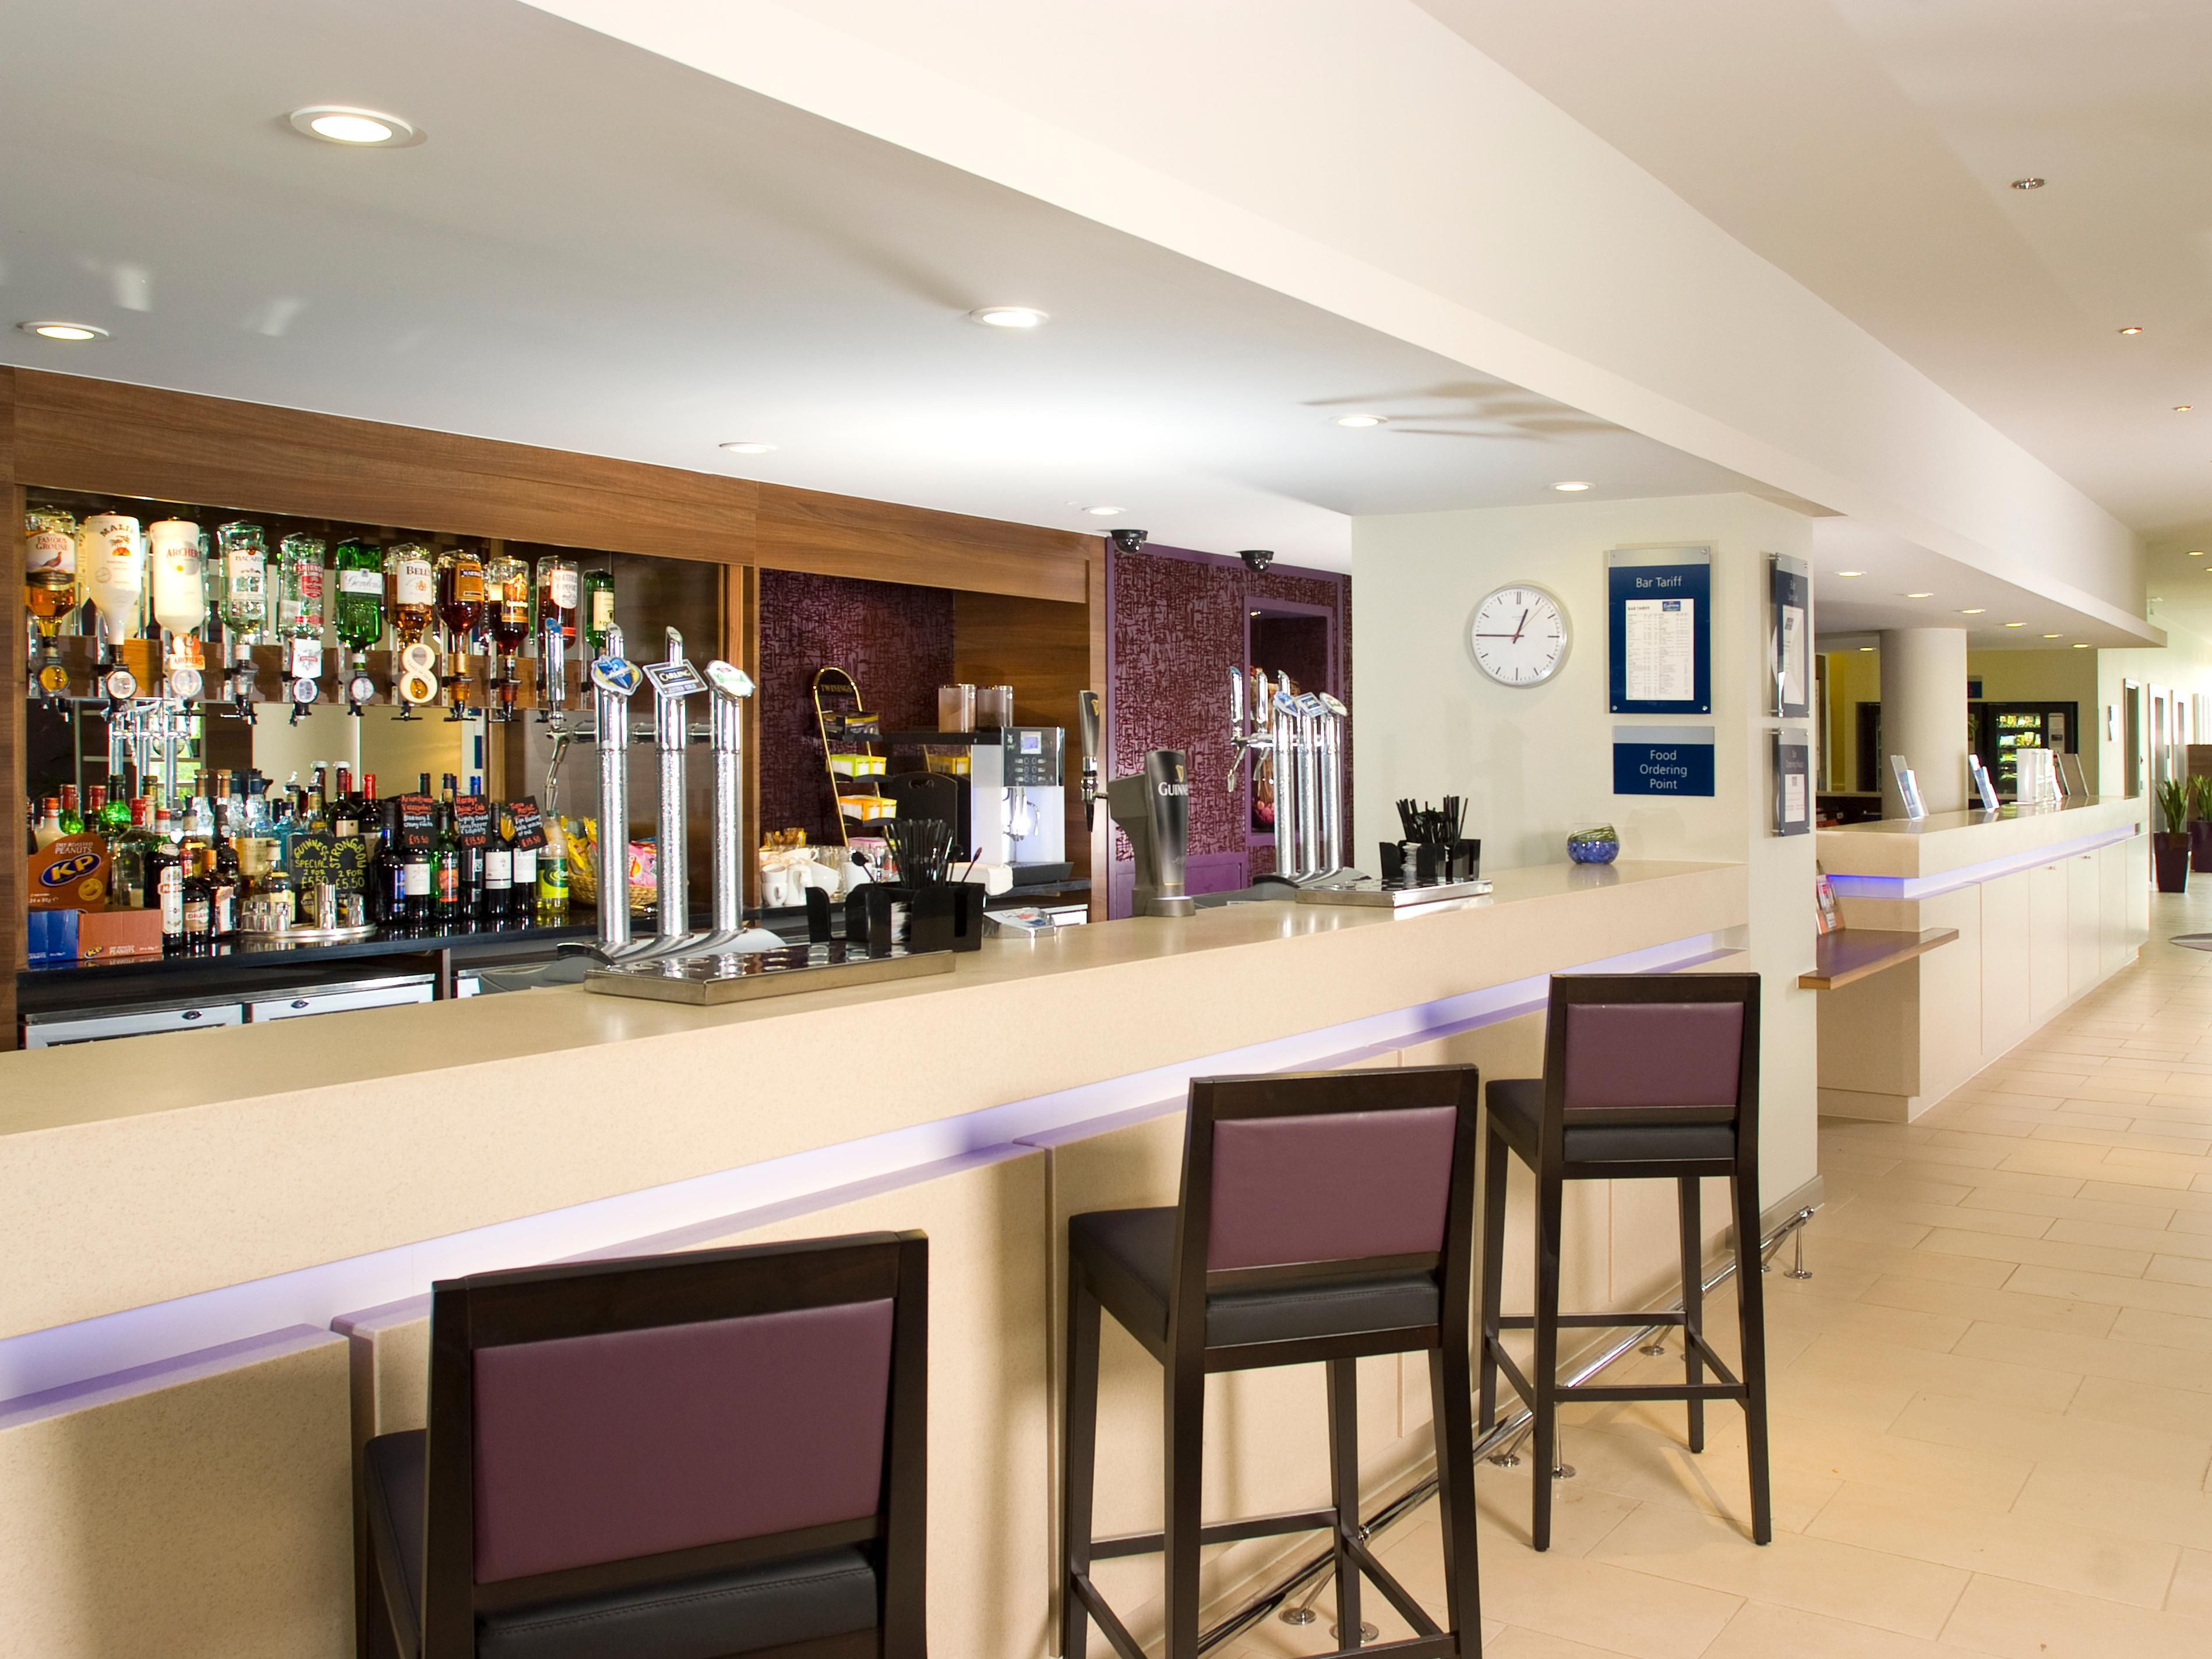 Our bar serves a selection of wines, beers, spirits & soft drinks